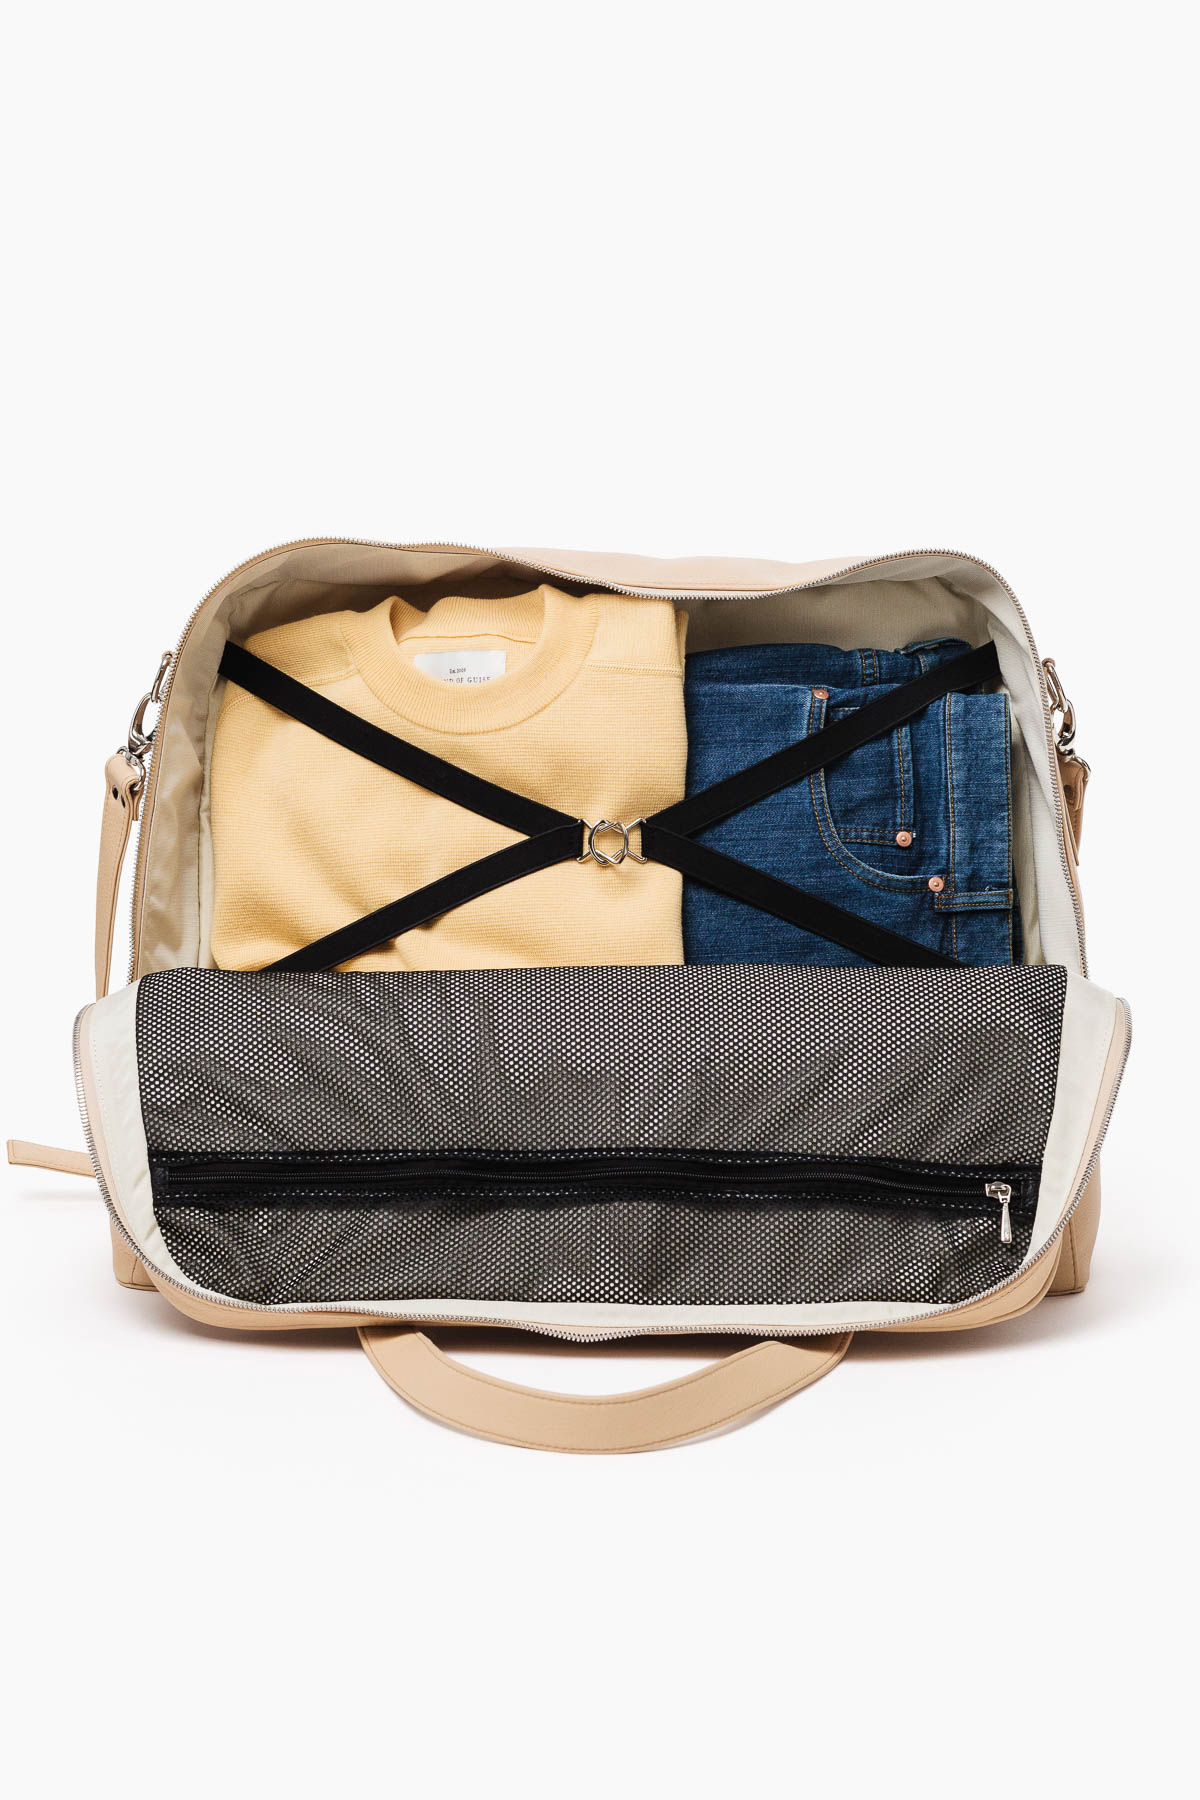 ss15-carryon-natural-52.jpg